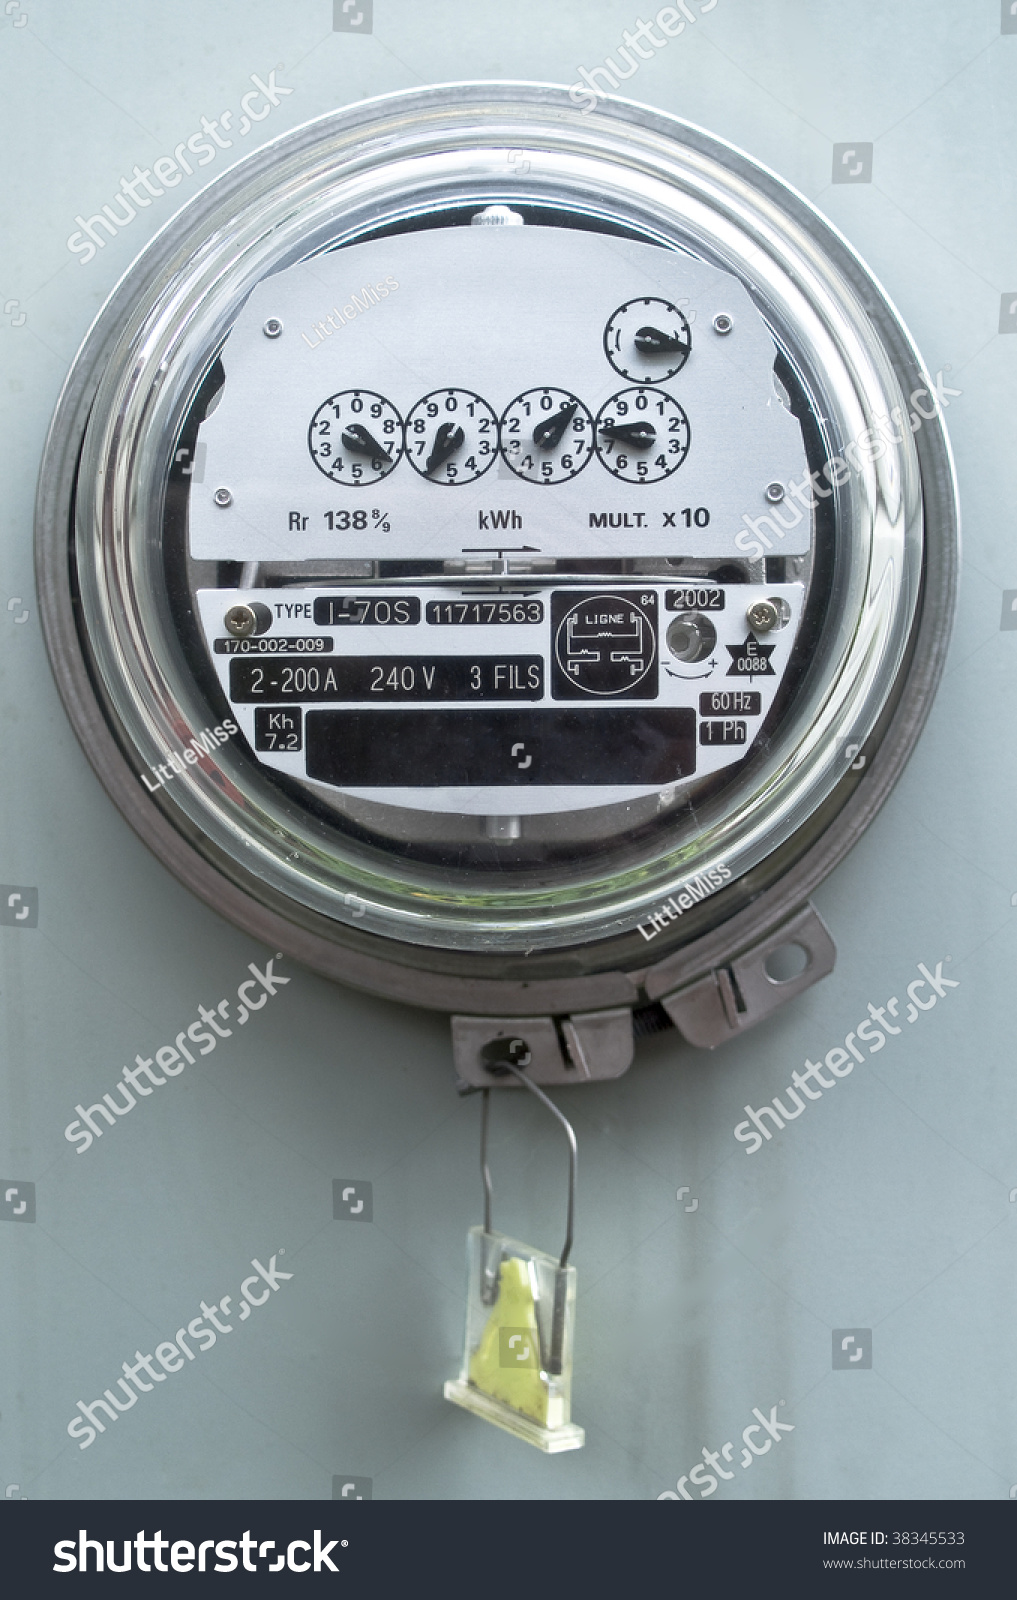 Multifunction Meter Front View : Electric meter front view stock photo shutterstock